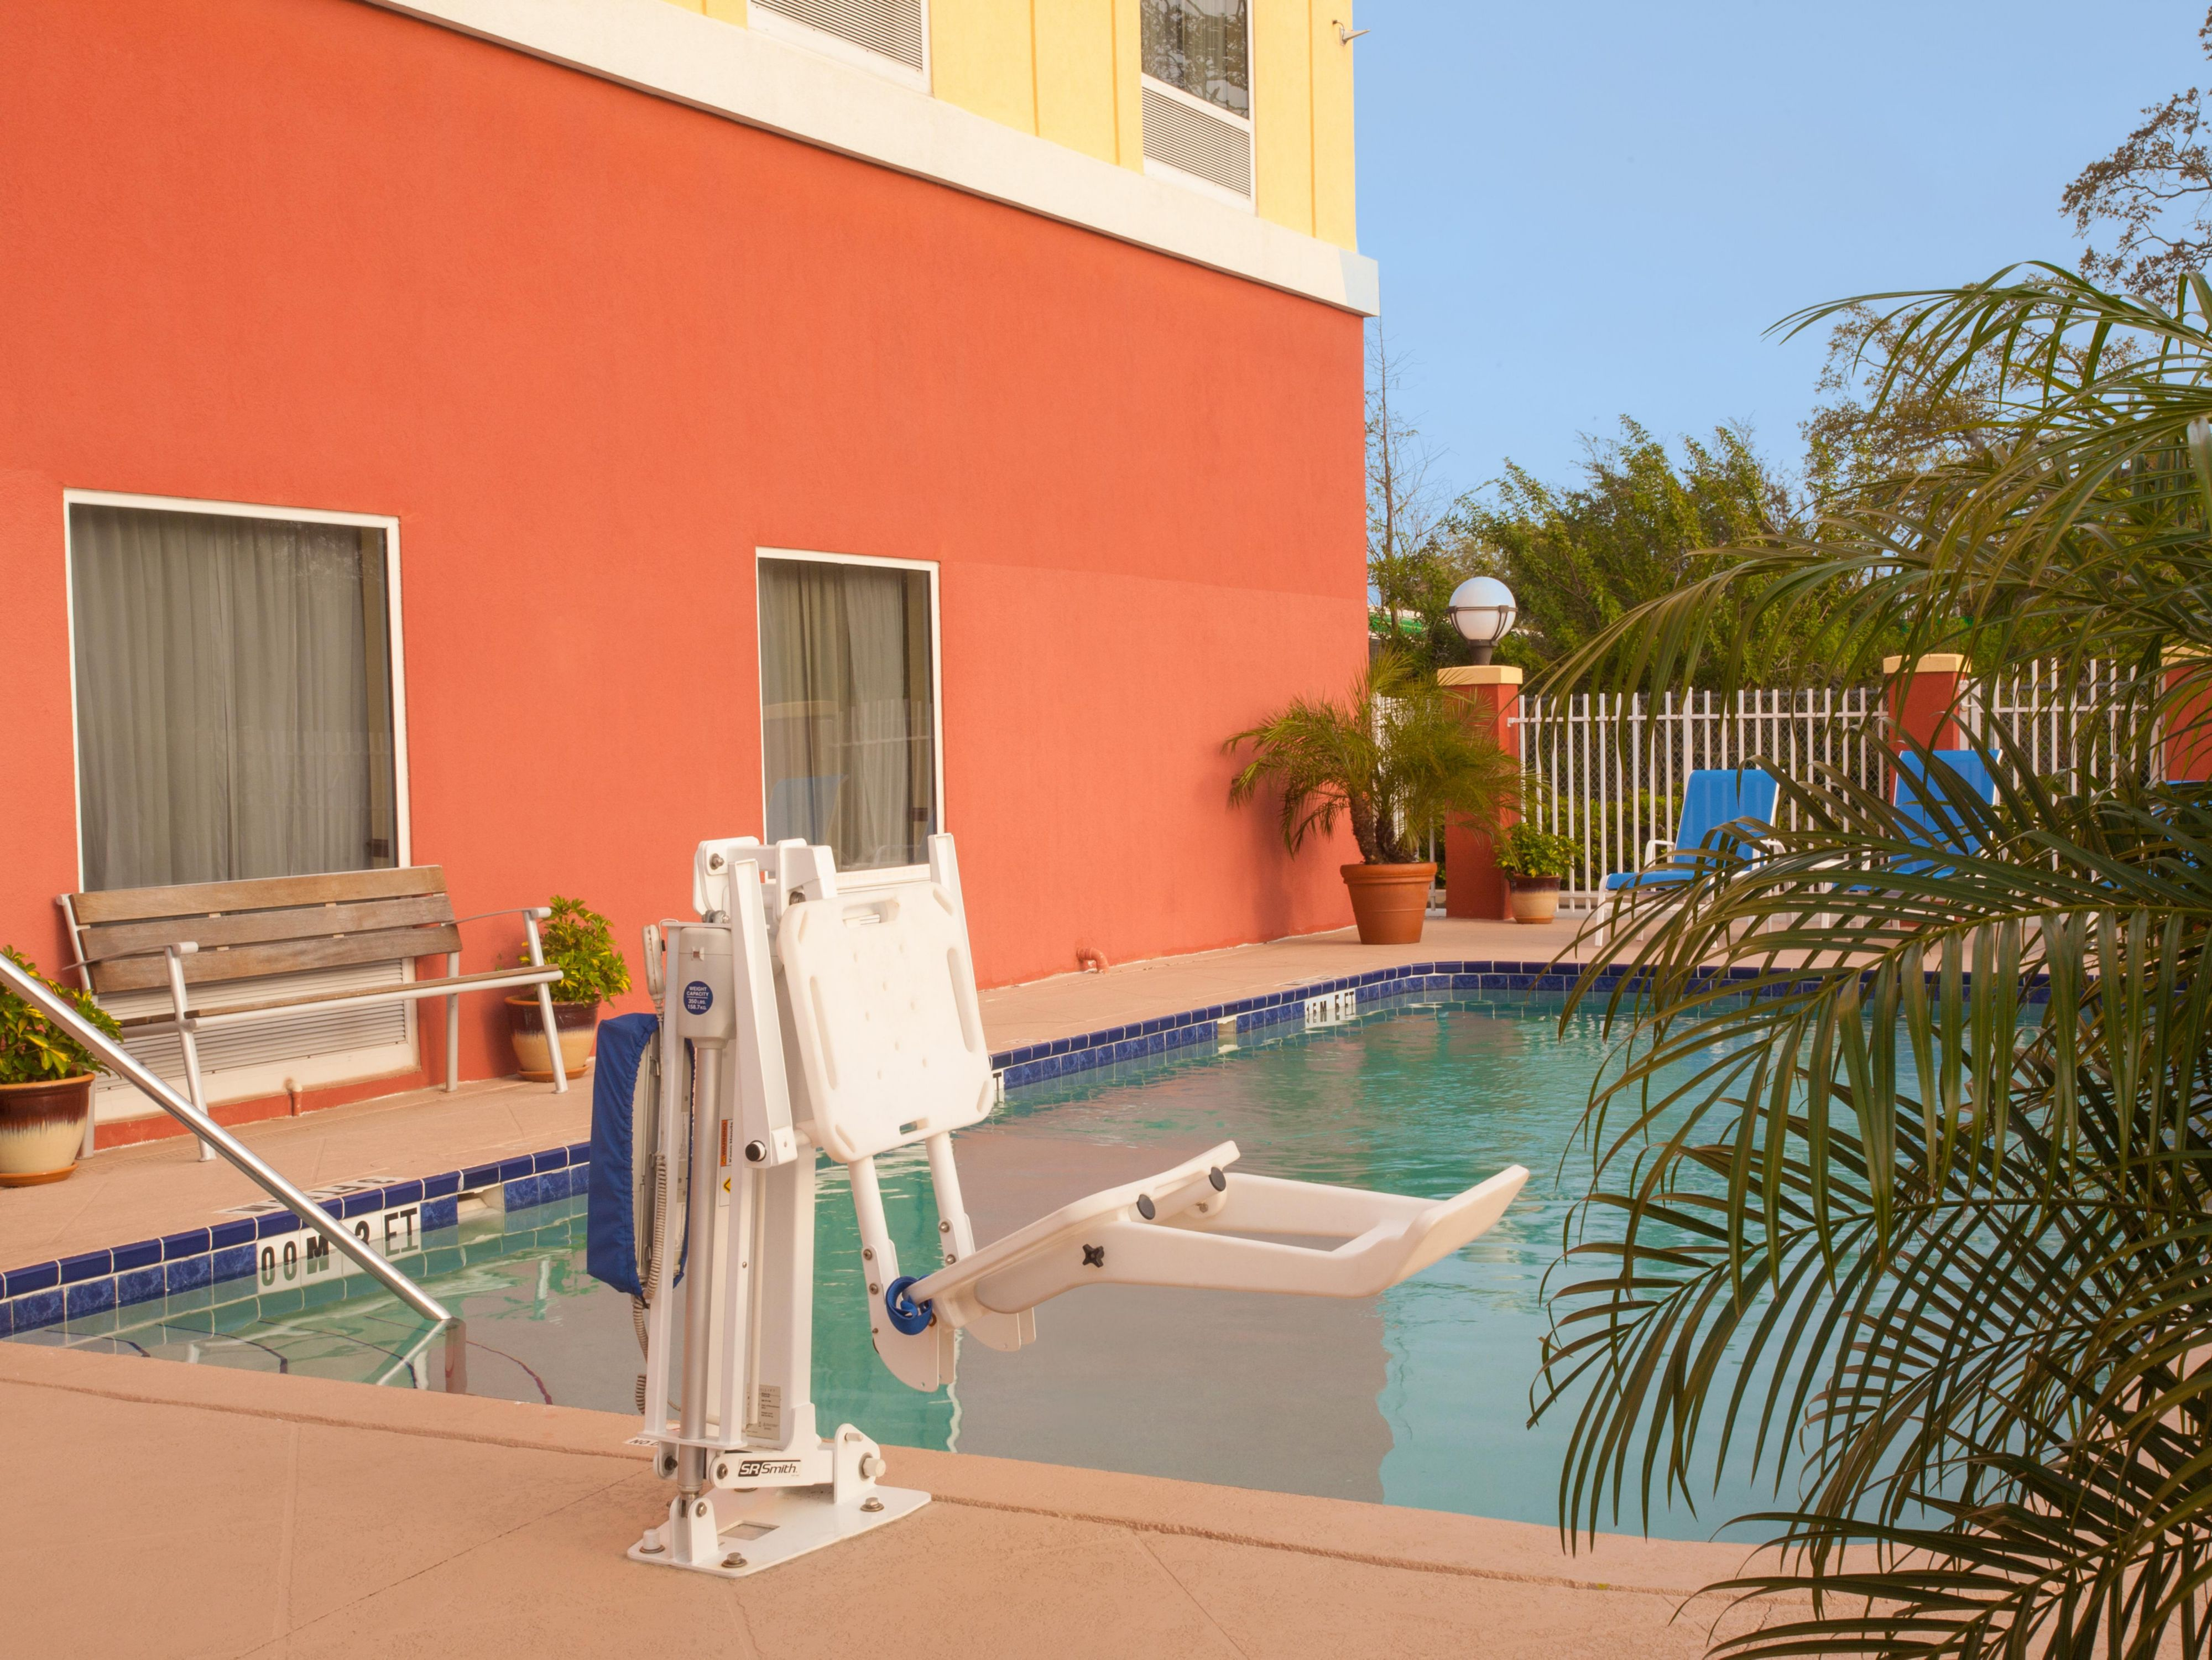 ADA/Handicapped accessible Swimming Pool Lift